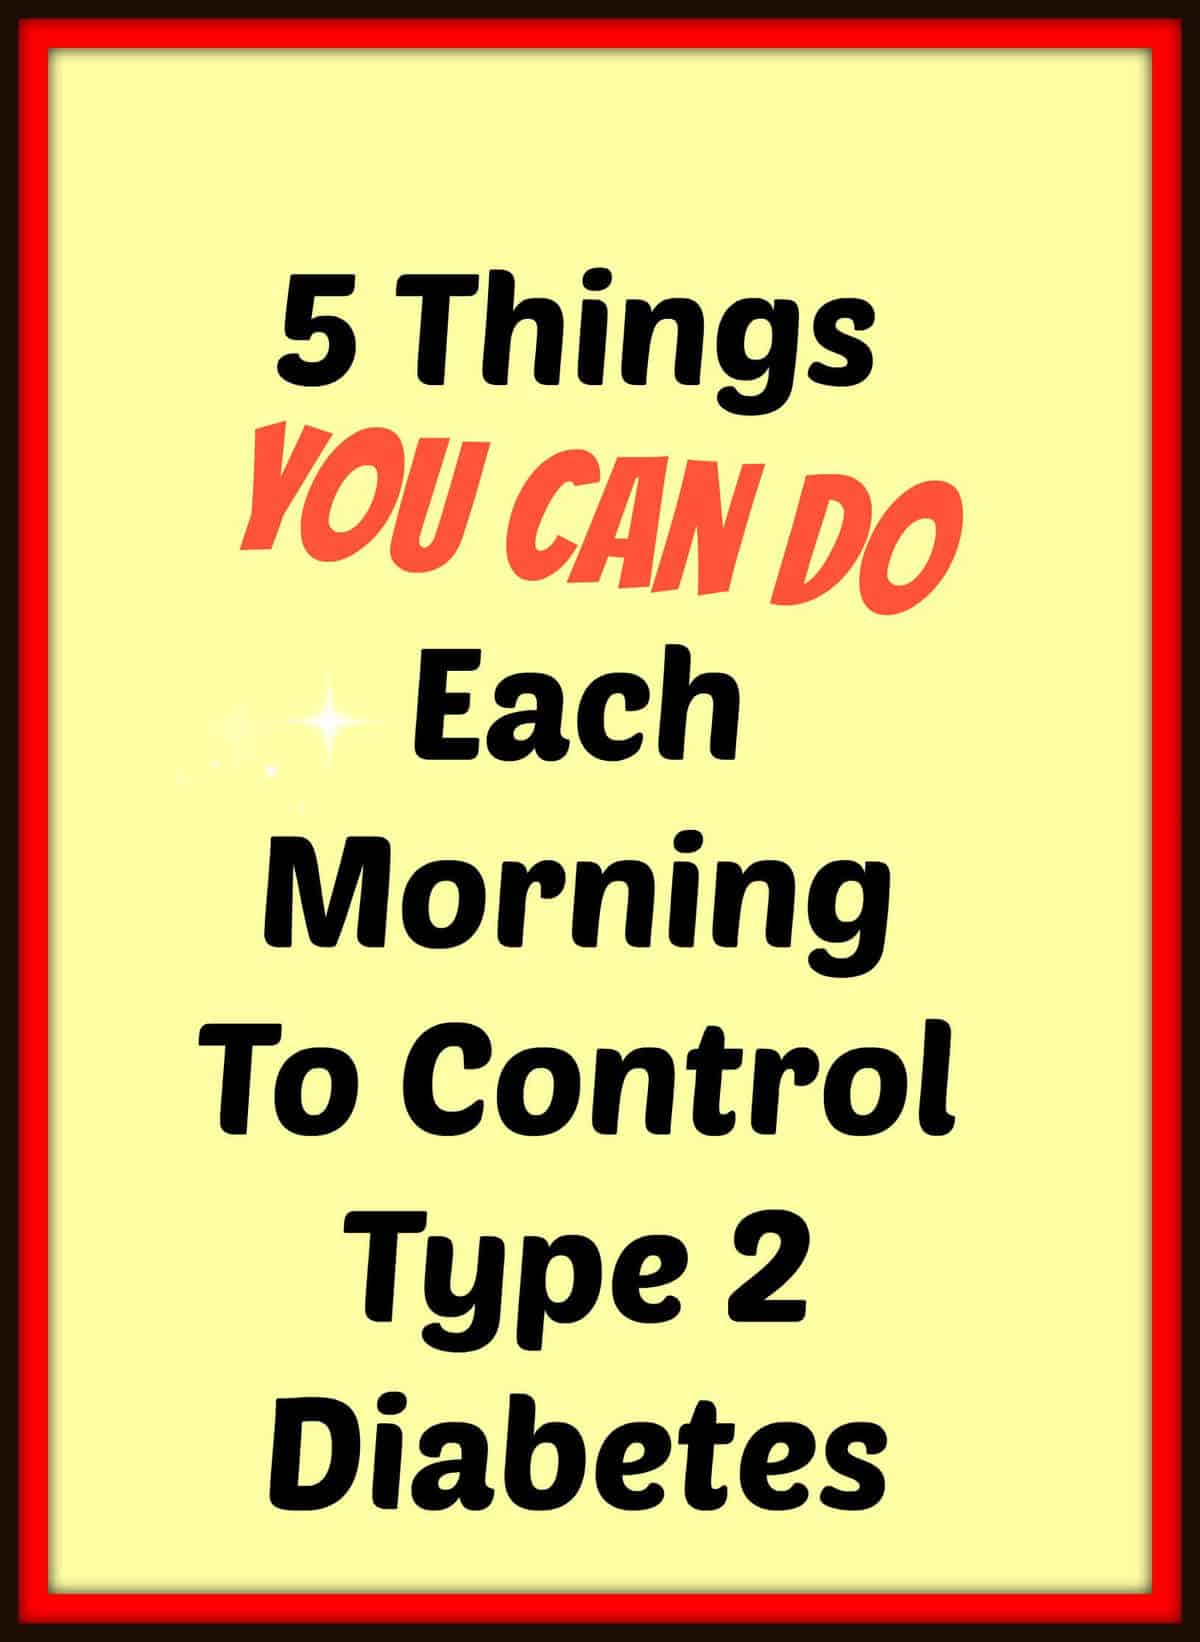 5 Things You Can Do Every Morning To Help Control Type 2